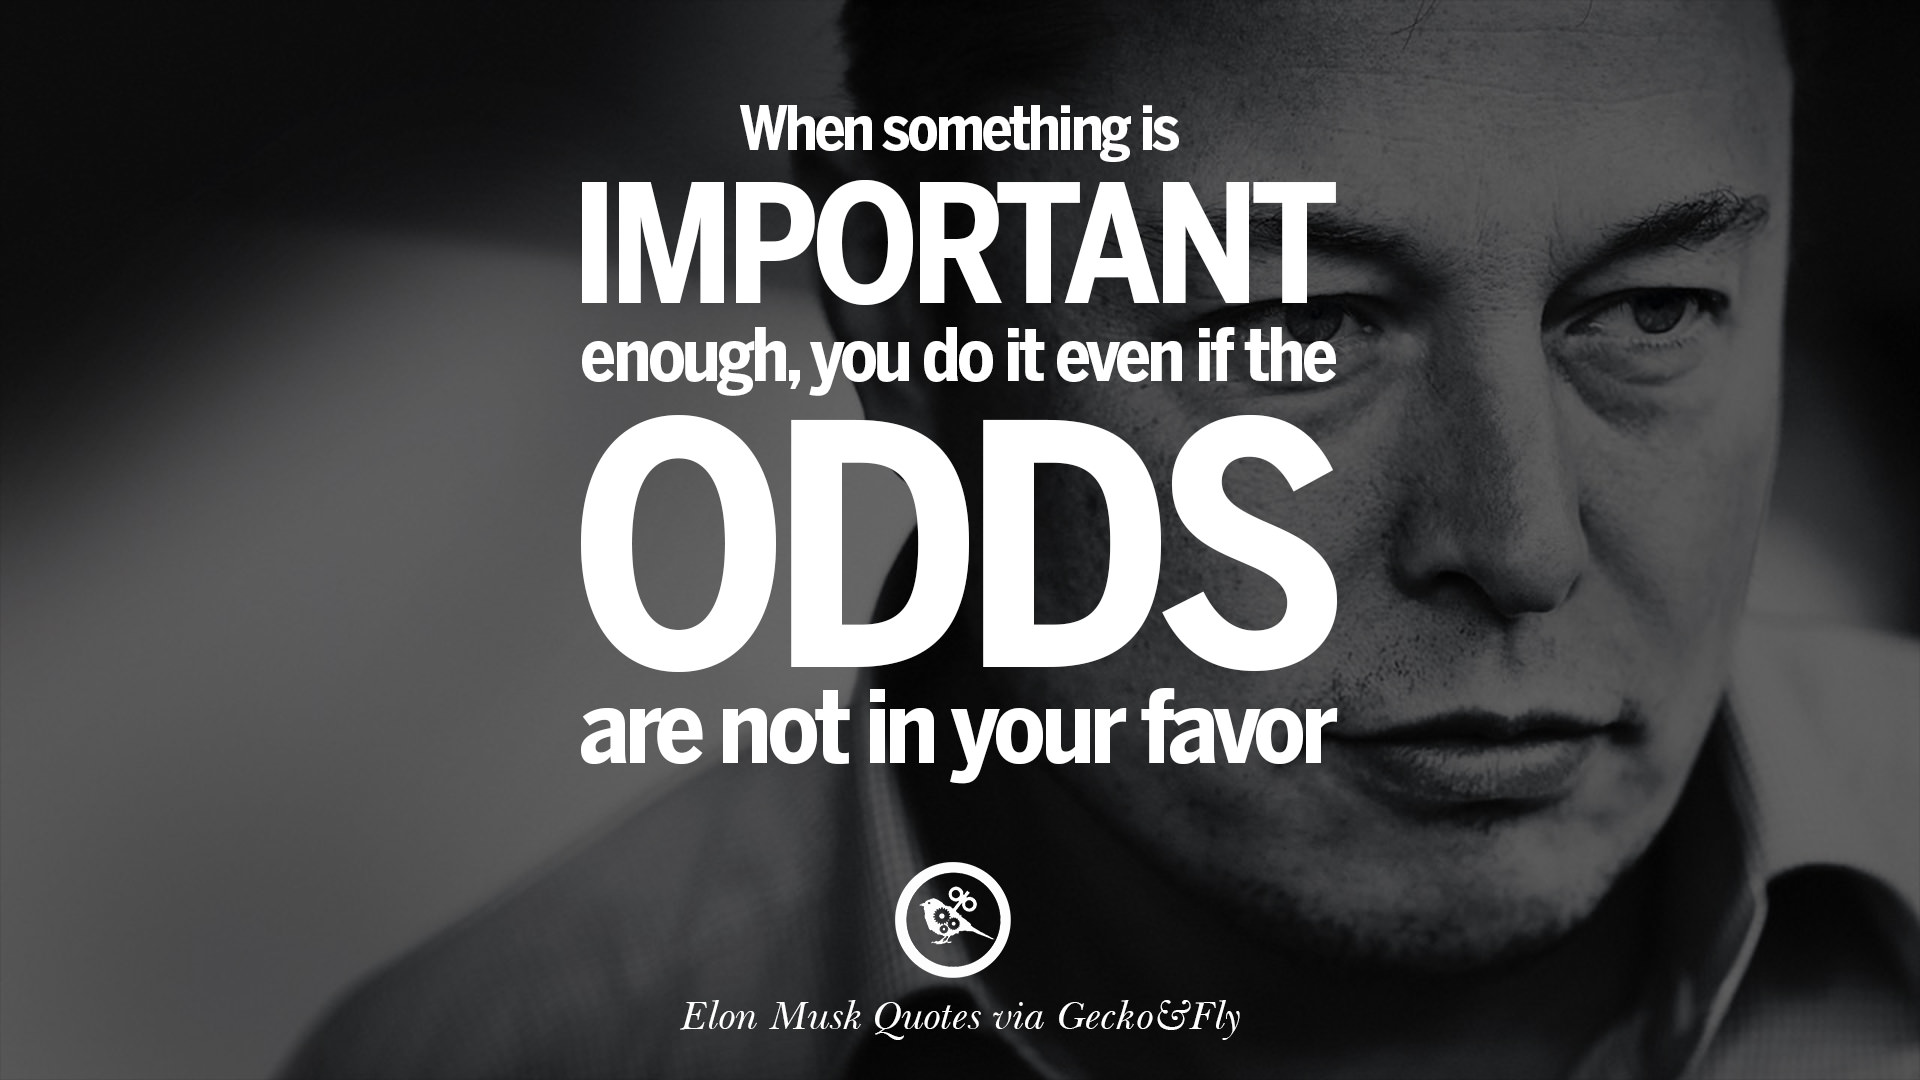 Elon Musk Quotes: The Whole Picture Of A Role Model